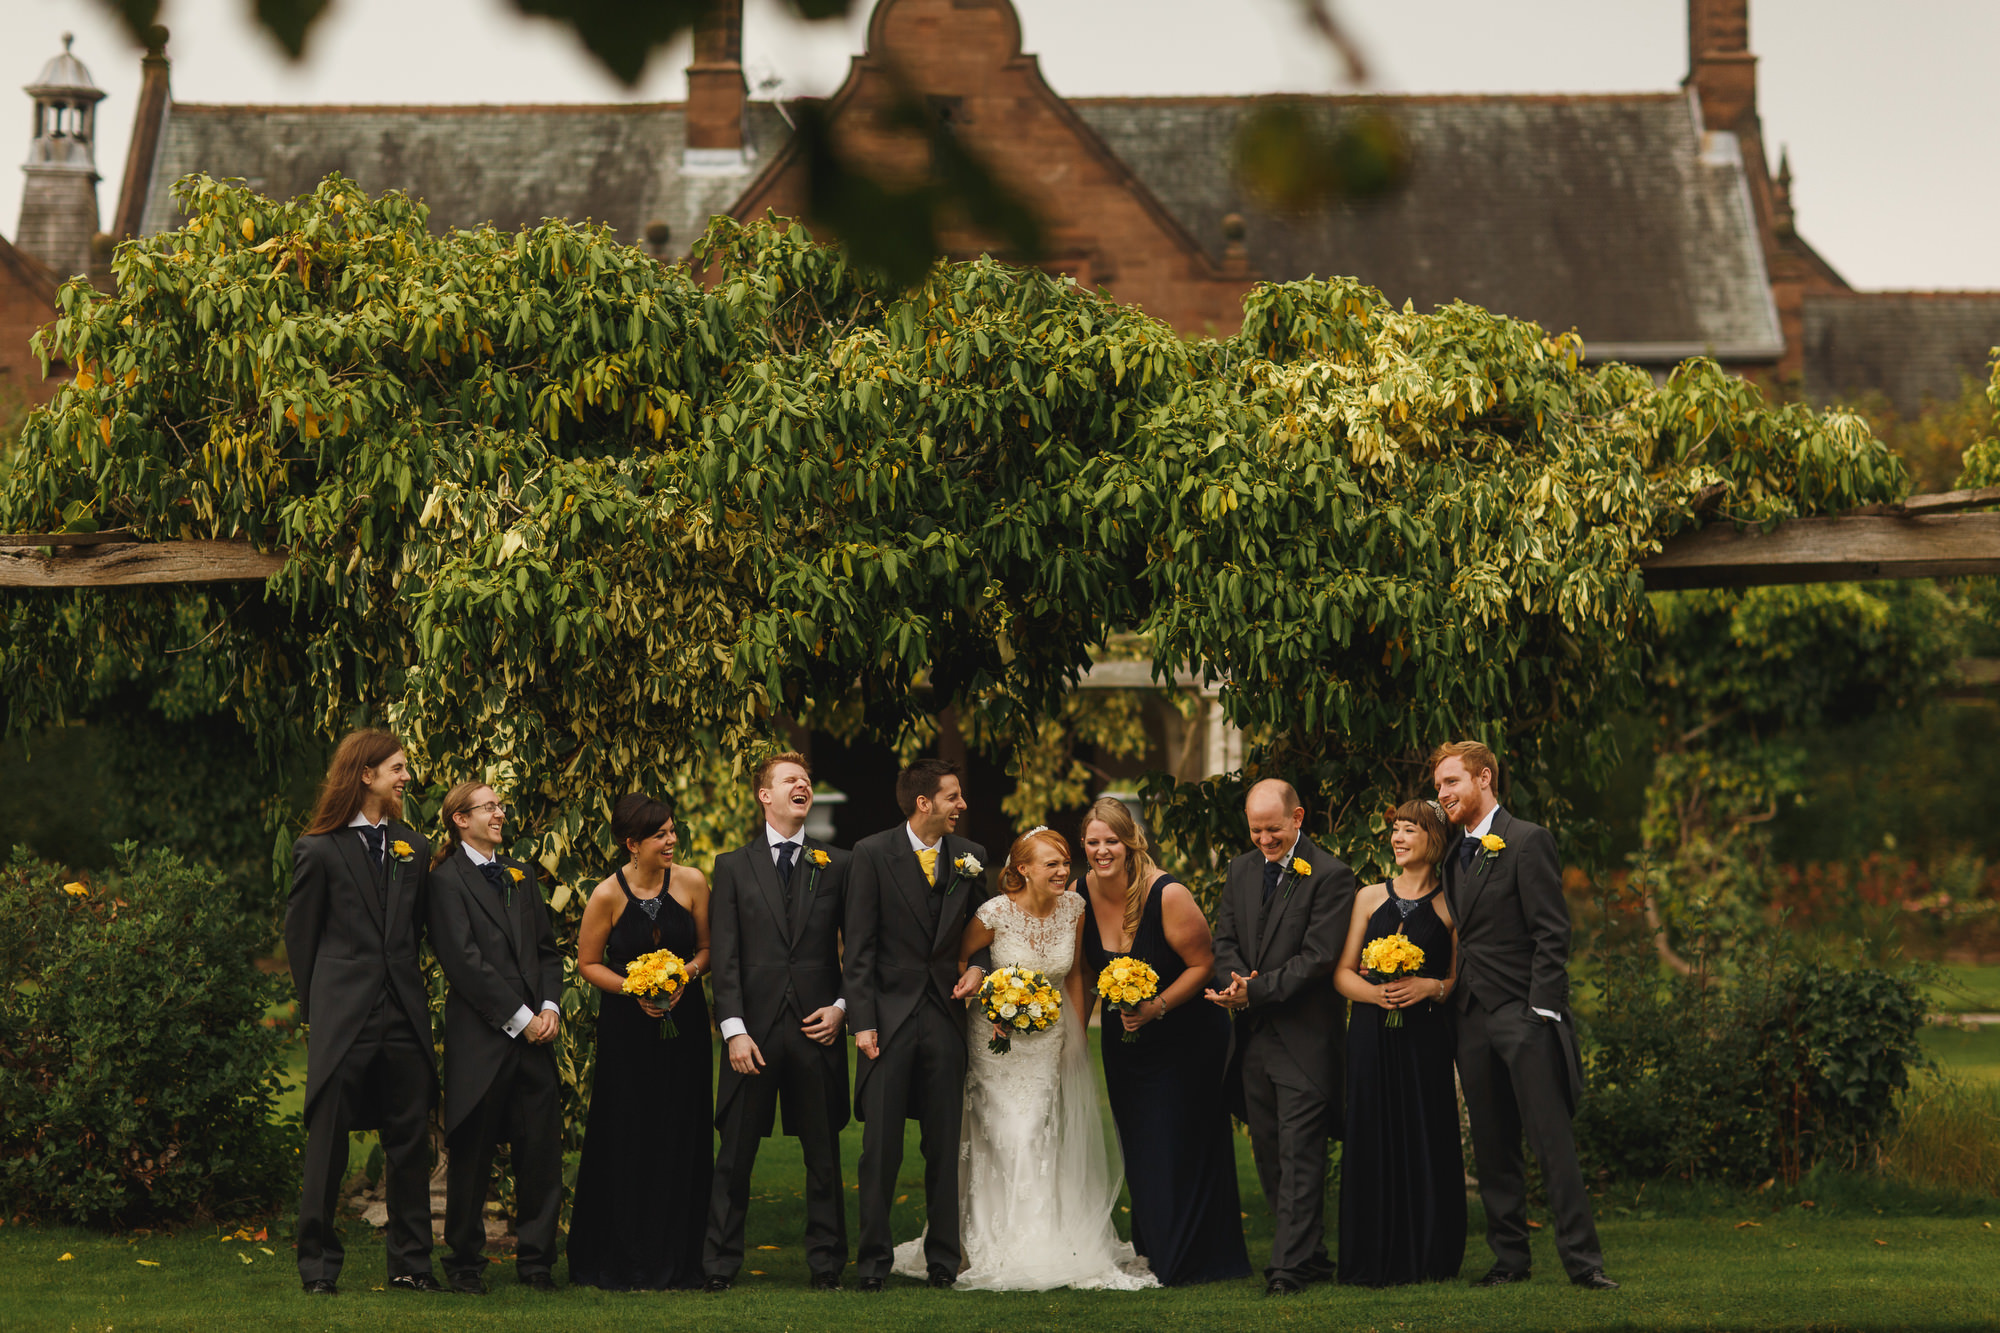 thornton-manor-wedding-photography-sarah-rich-32